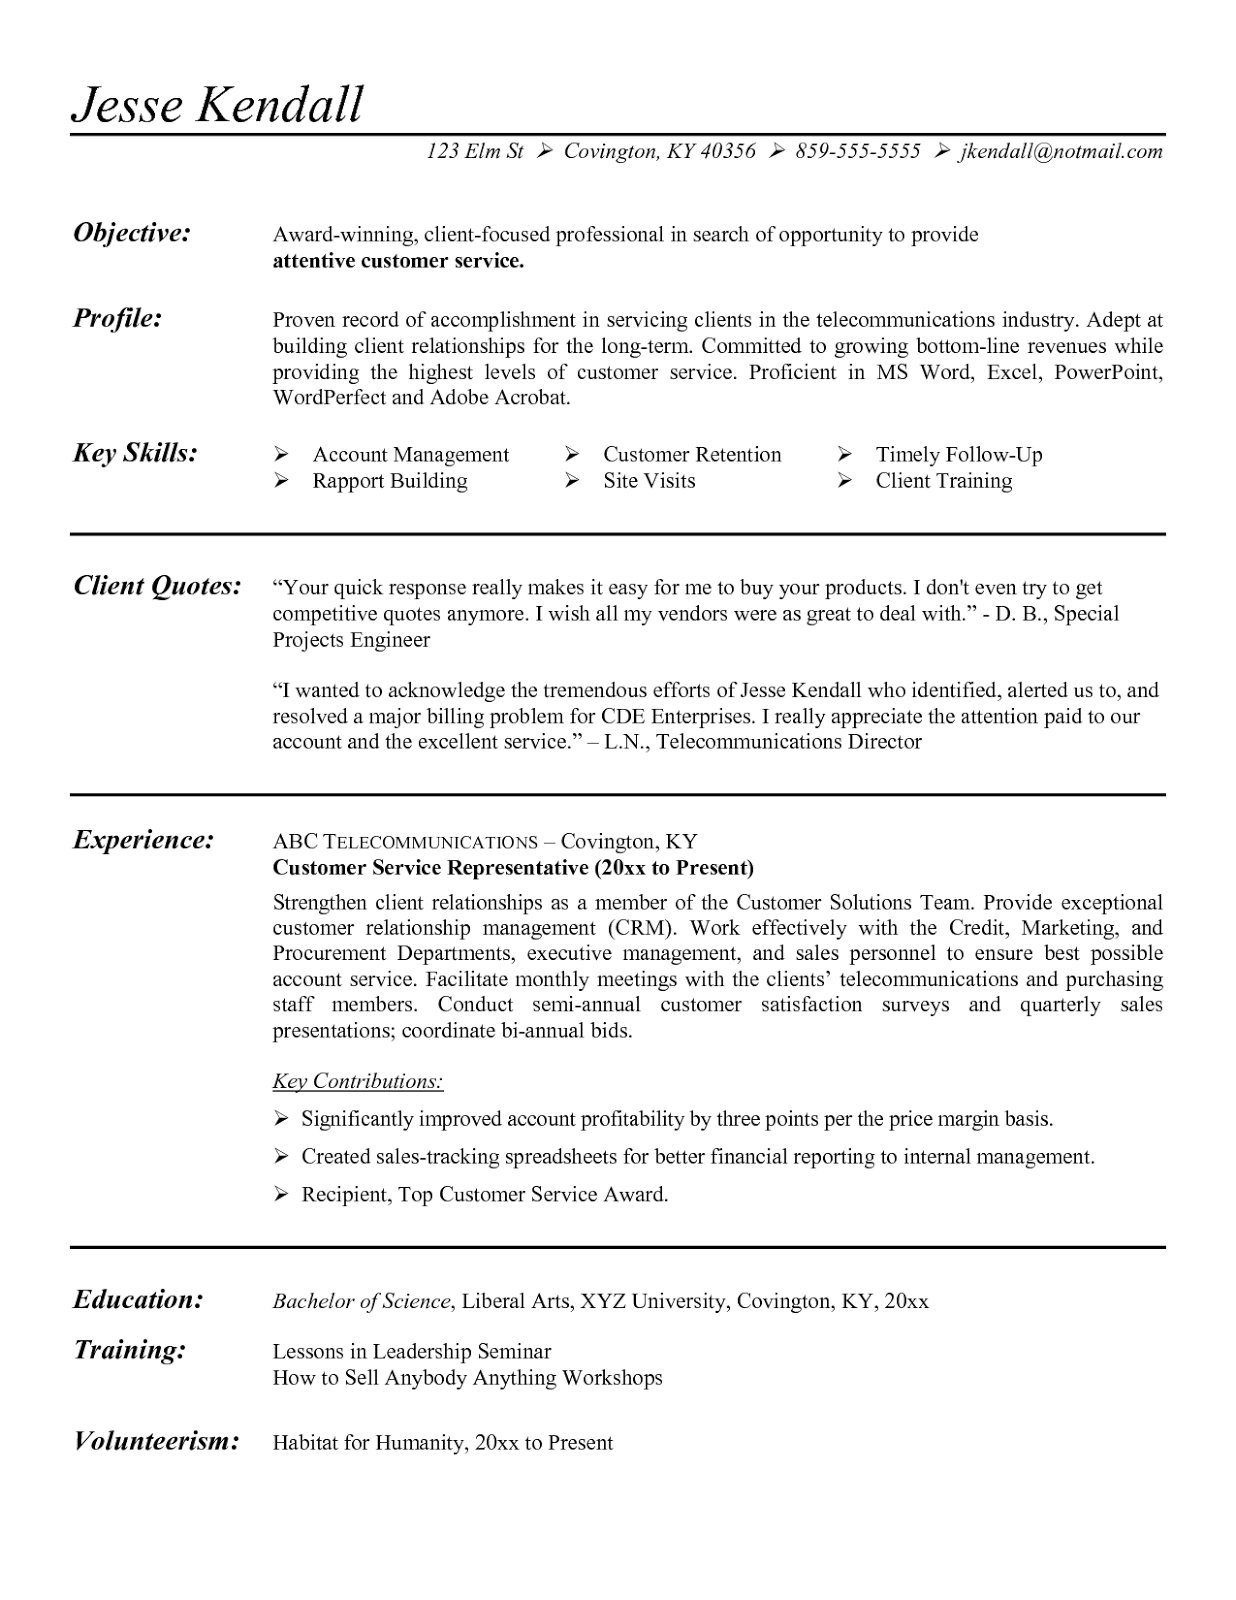 Resume Customer Service Sales Representative Resume resume sample for sales representative wireless customer account resume